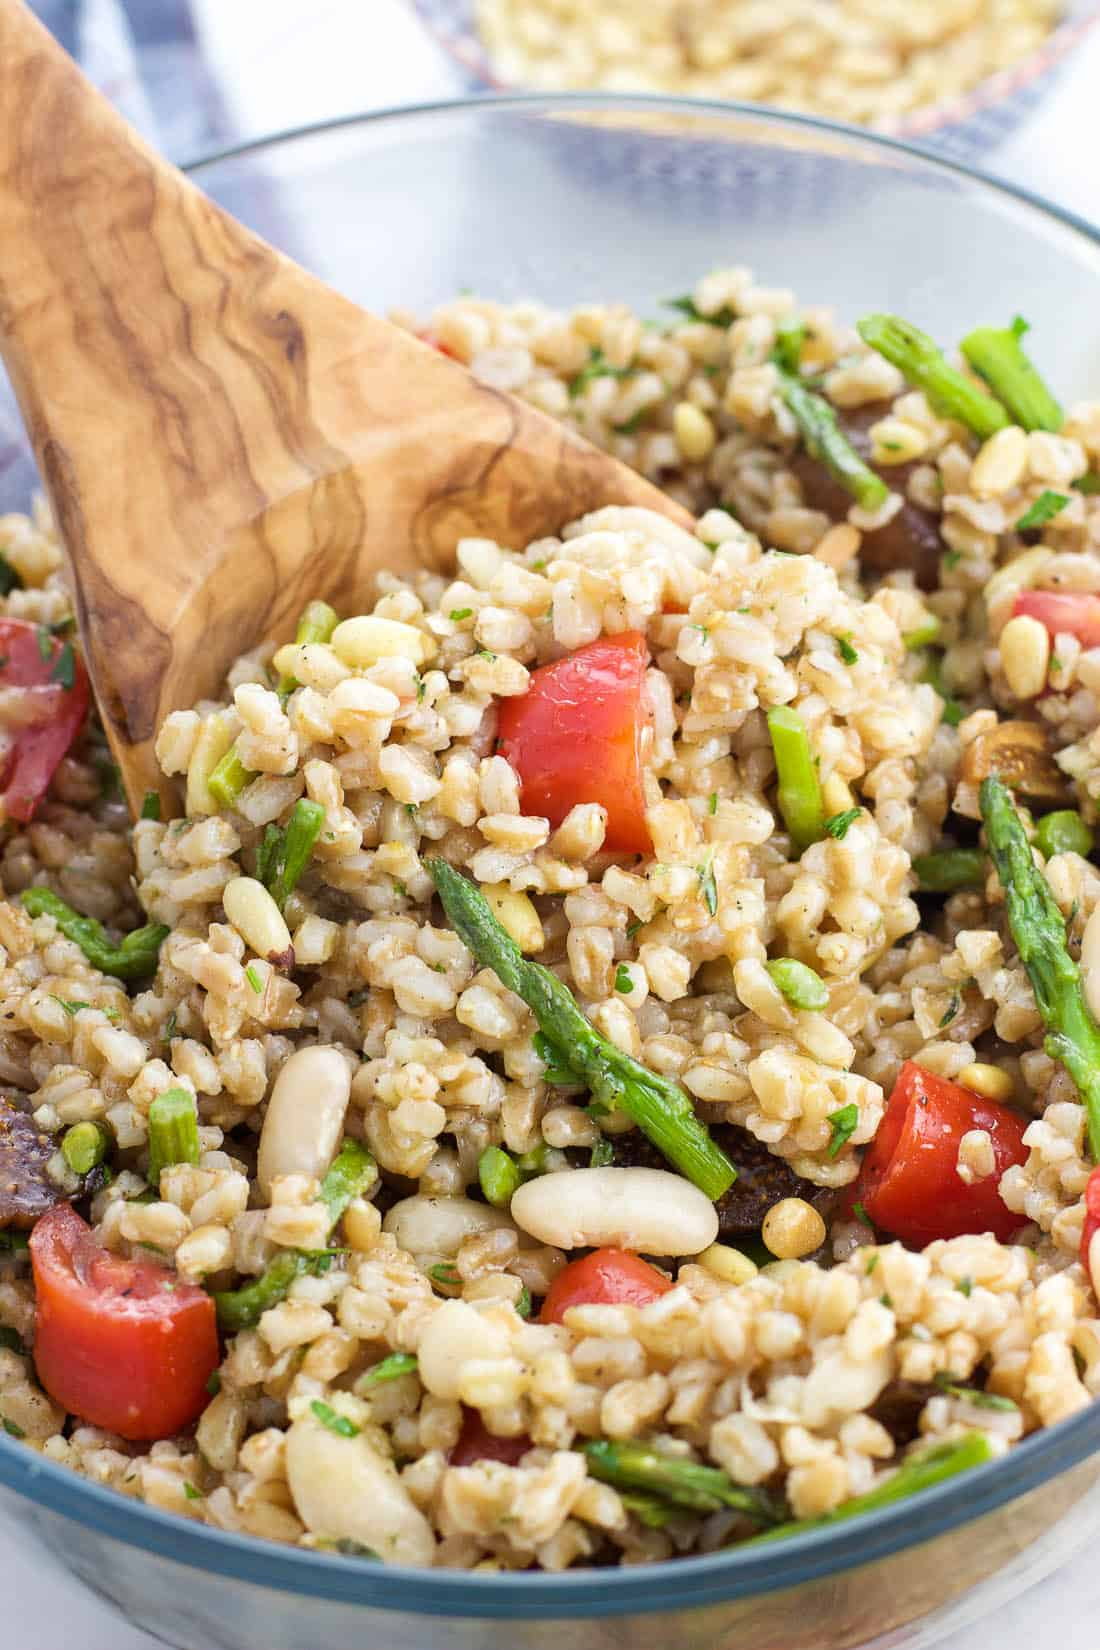 A wooden serving spoon scooping out a portion of farro salad from a serving bowl